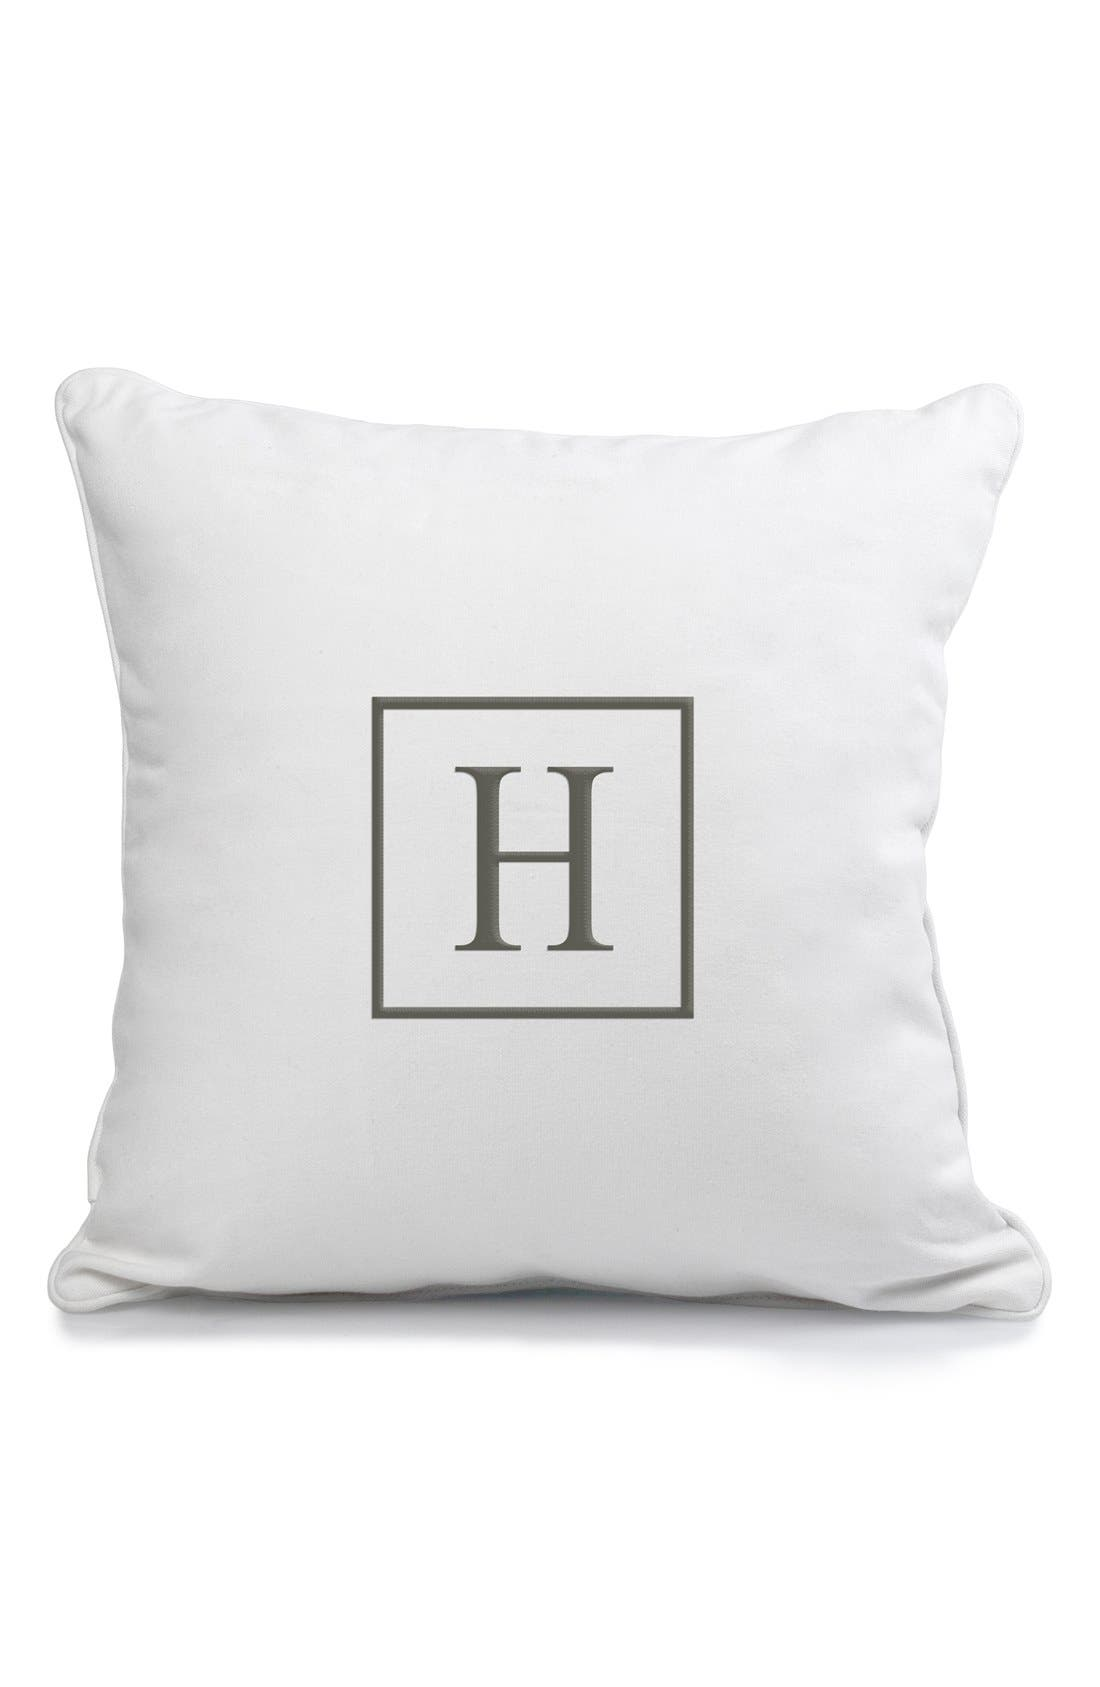 Main Image - Cathy's Concepts Monogram Pillow